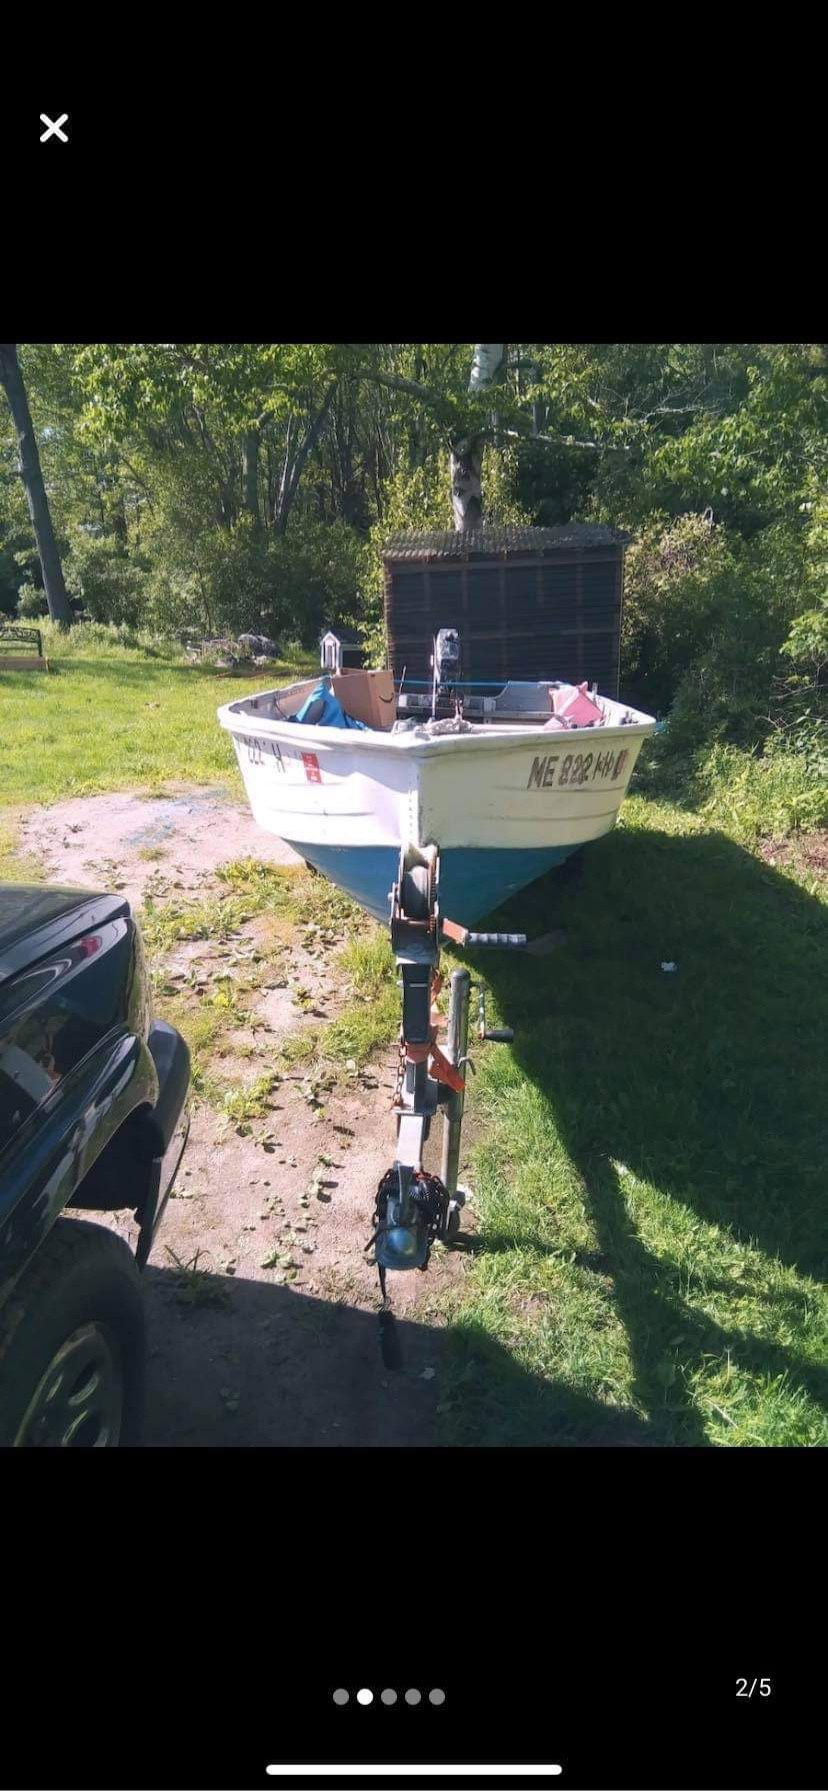 Photo 15ft aluminum Starcraft boat with 9.5 evenrude sport win outboard